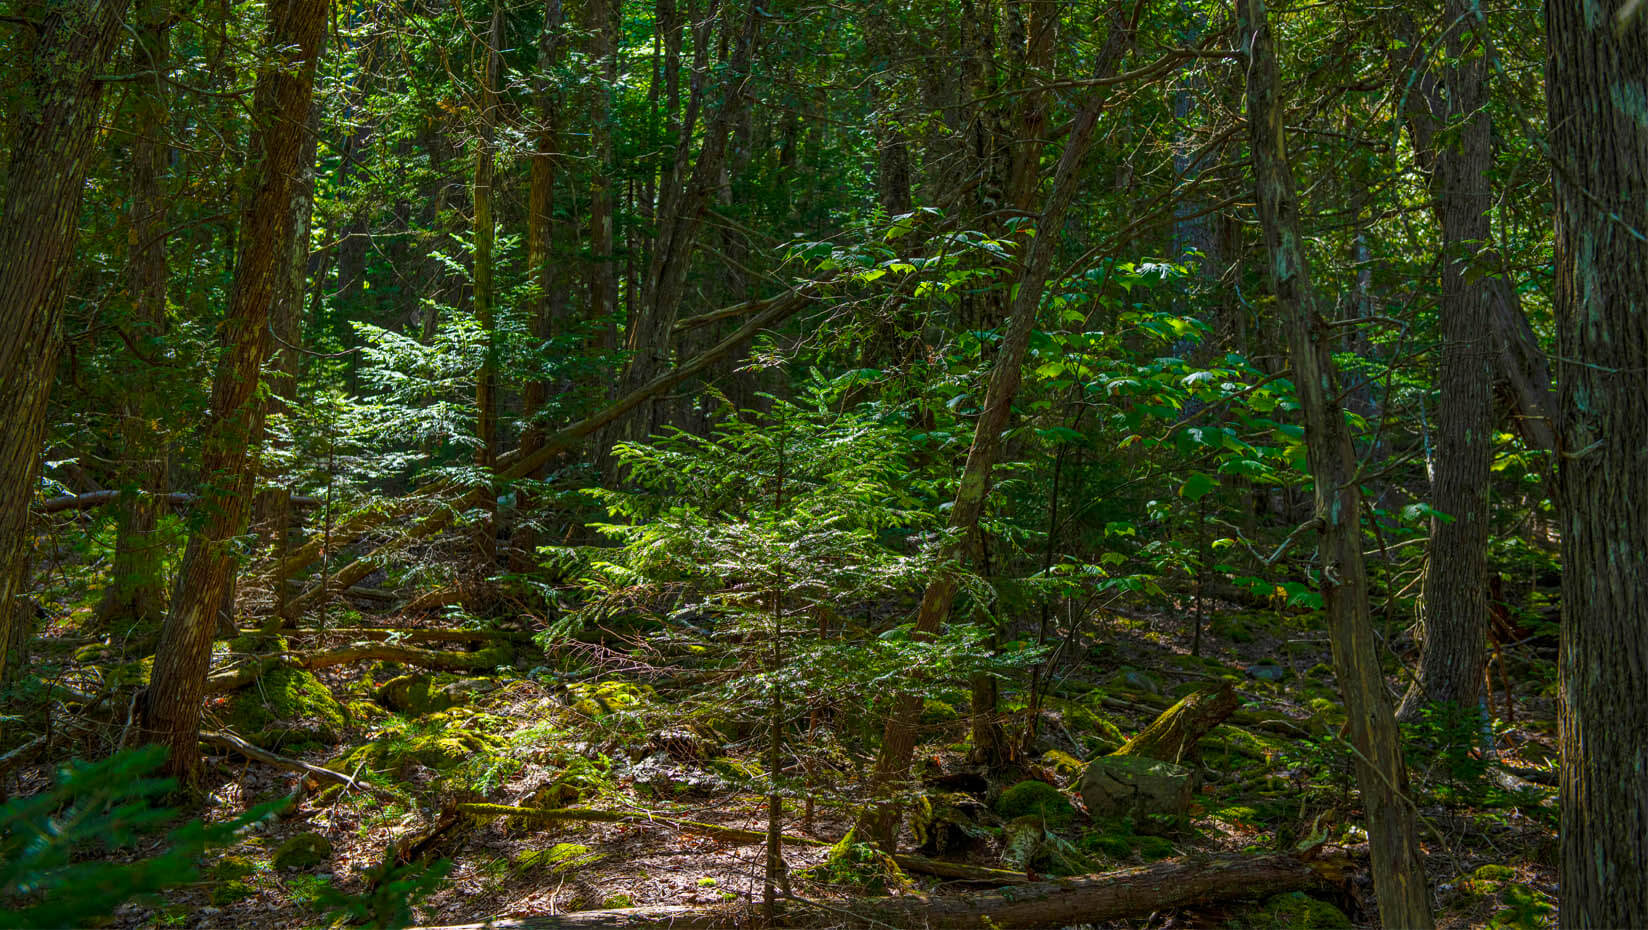 A forest view in Maine